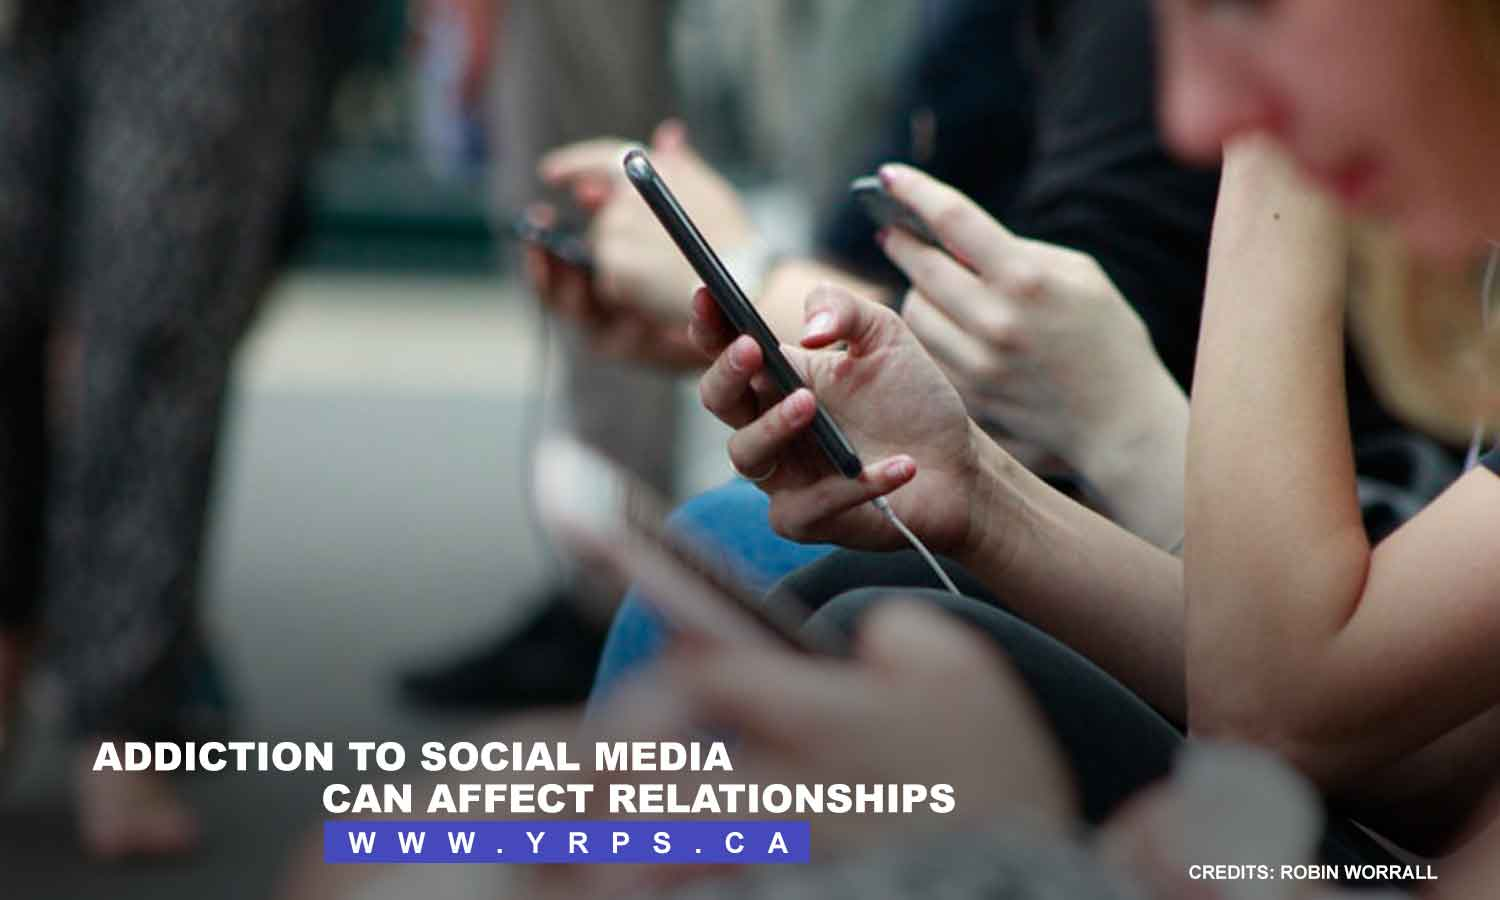 Addiction to social media can affect relationships